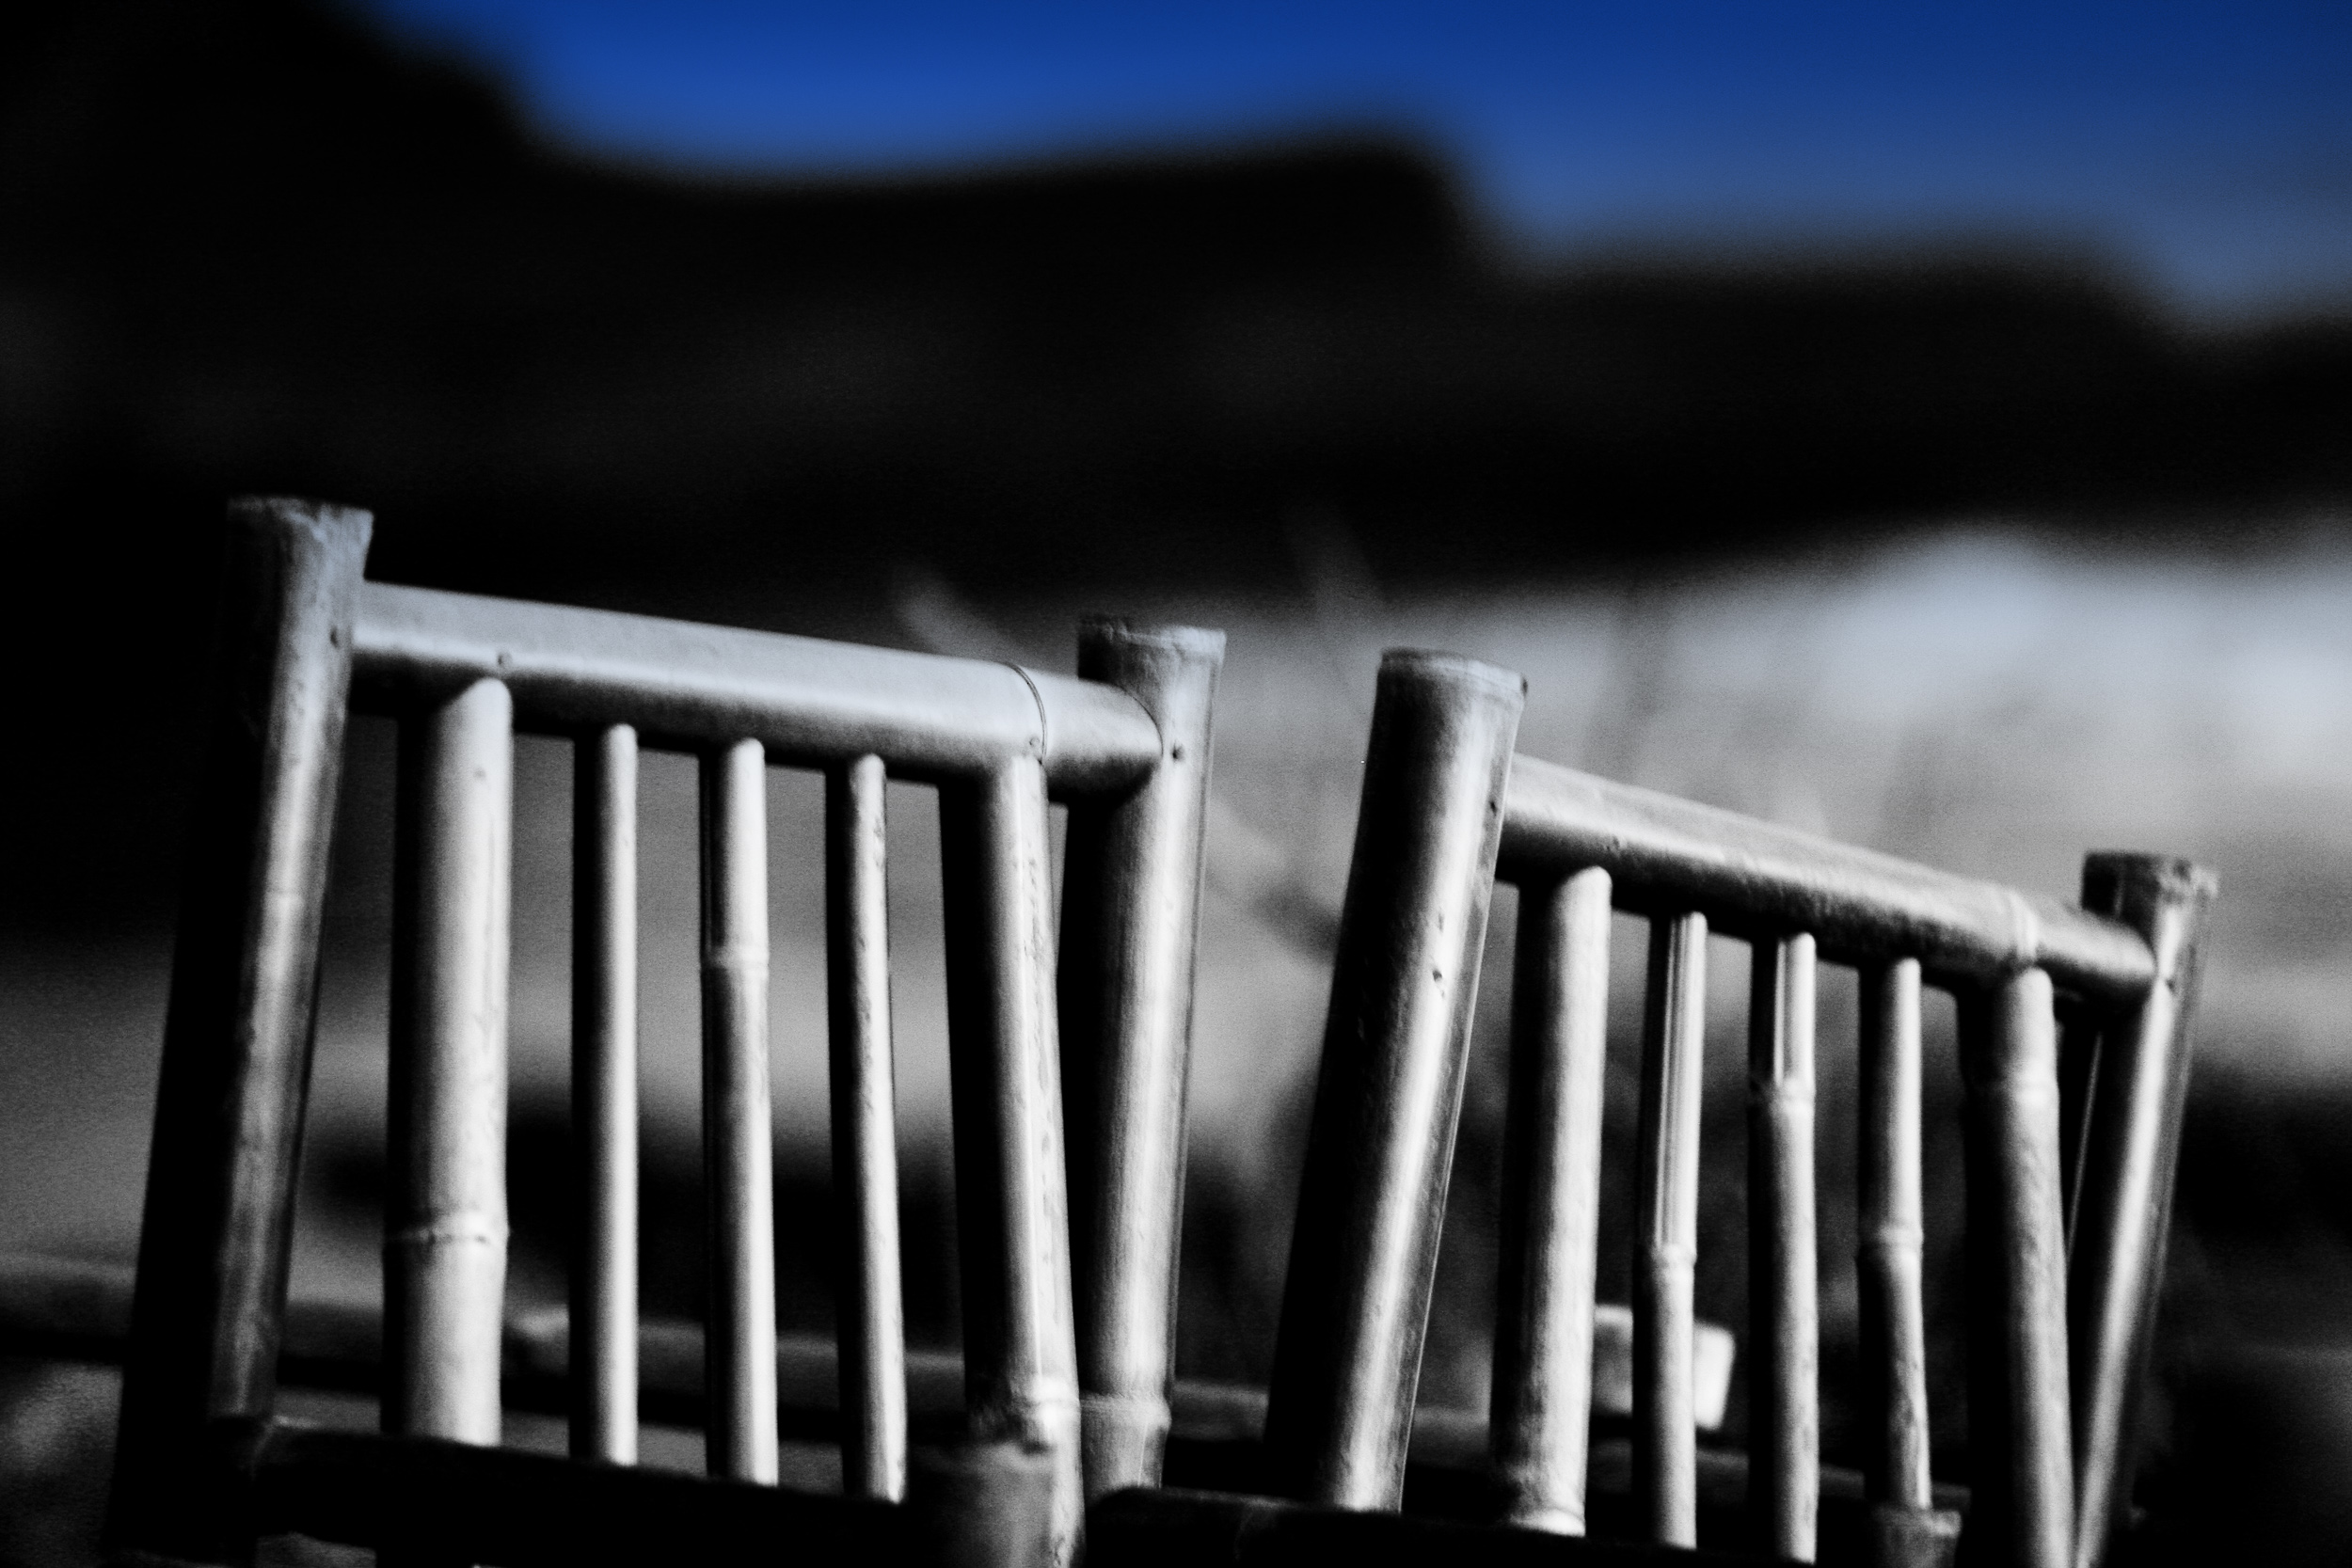 Bamboo chairs along the beach, Tanah Lot, Bali Indonesia